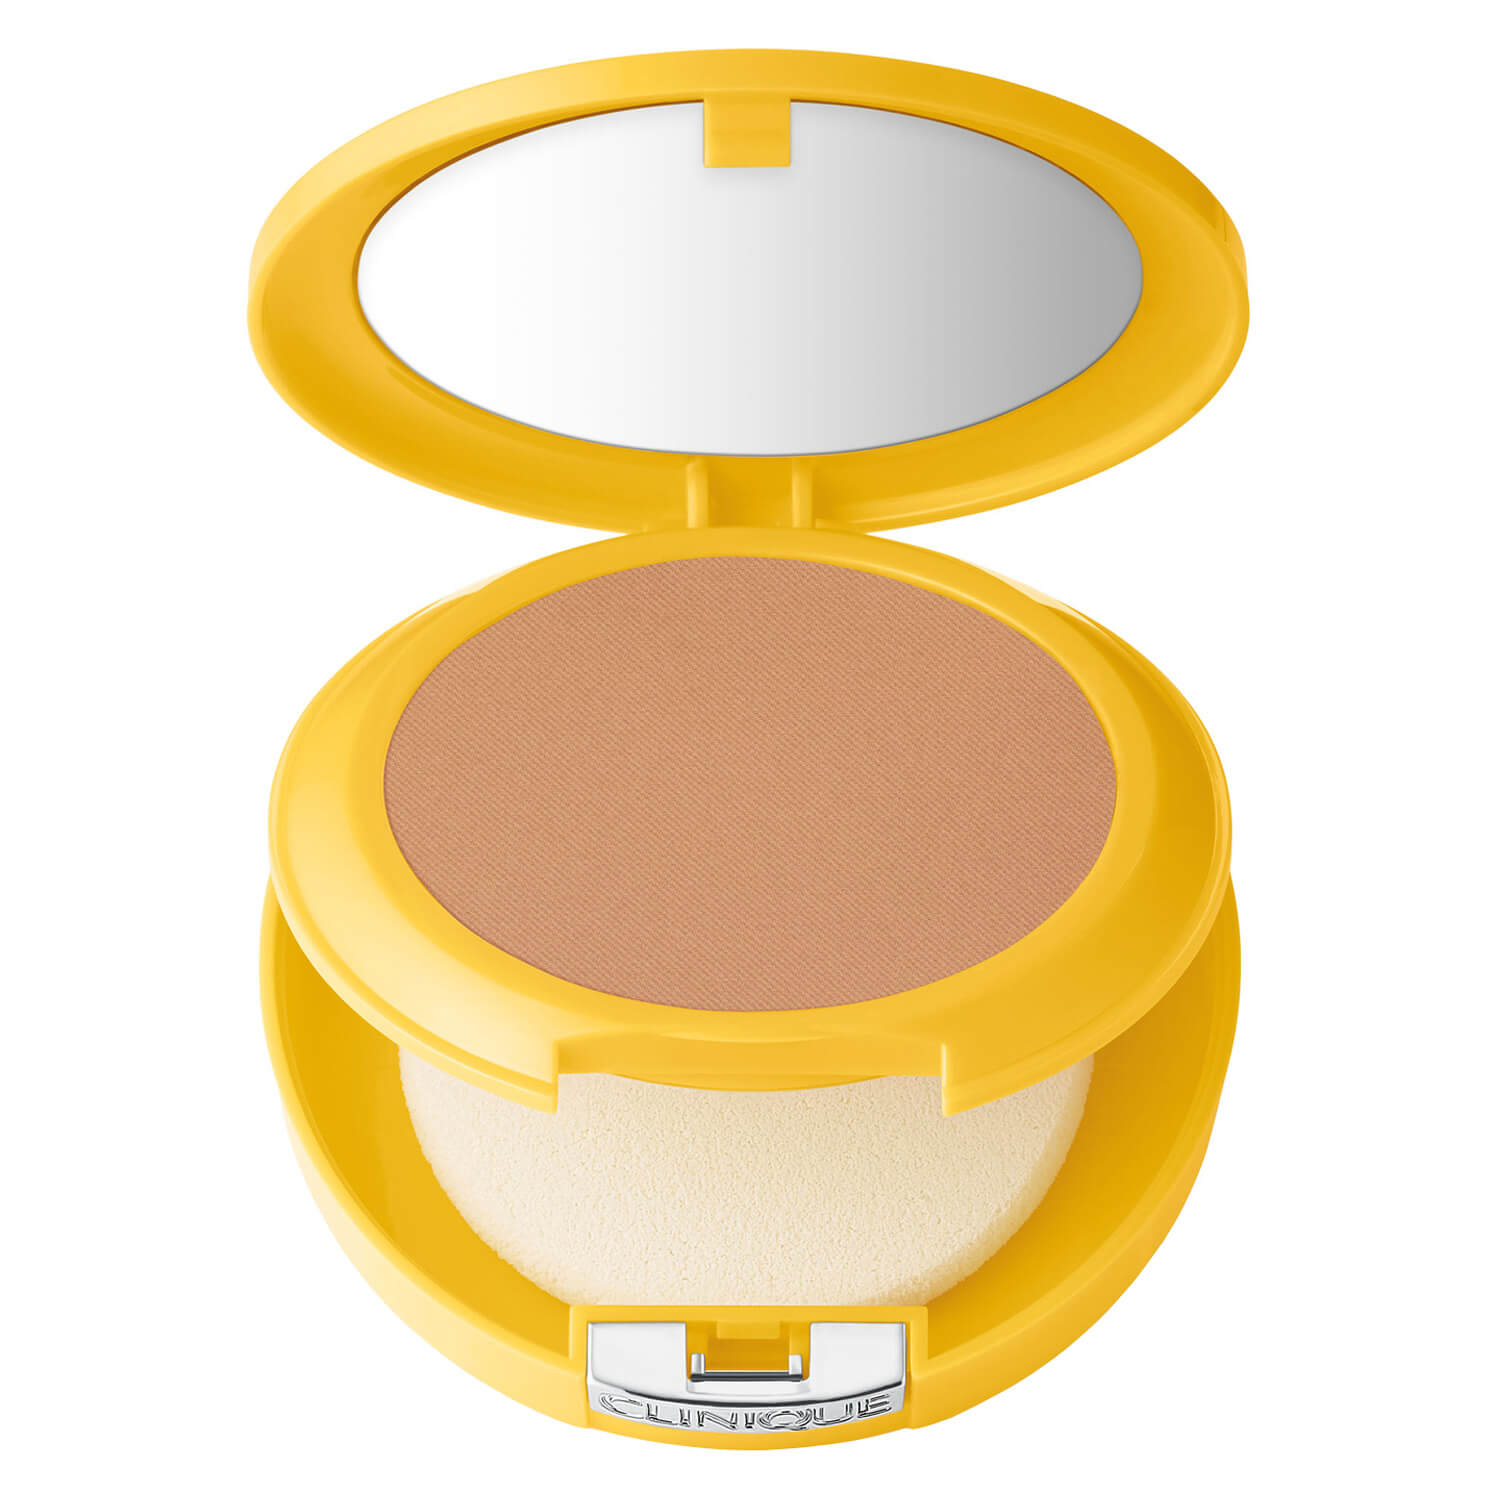 Clinique Sun - SPF30 Mineral Powder Makeup for Face Medium